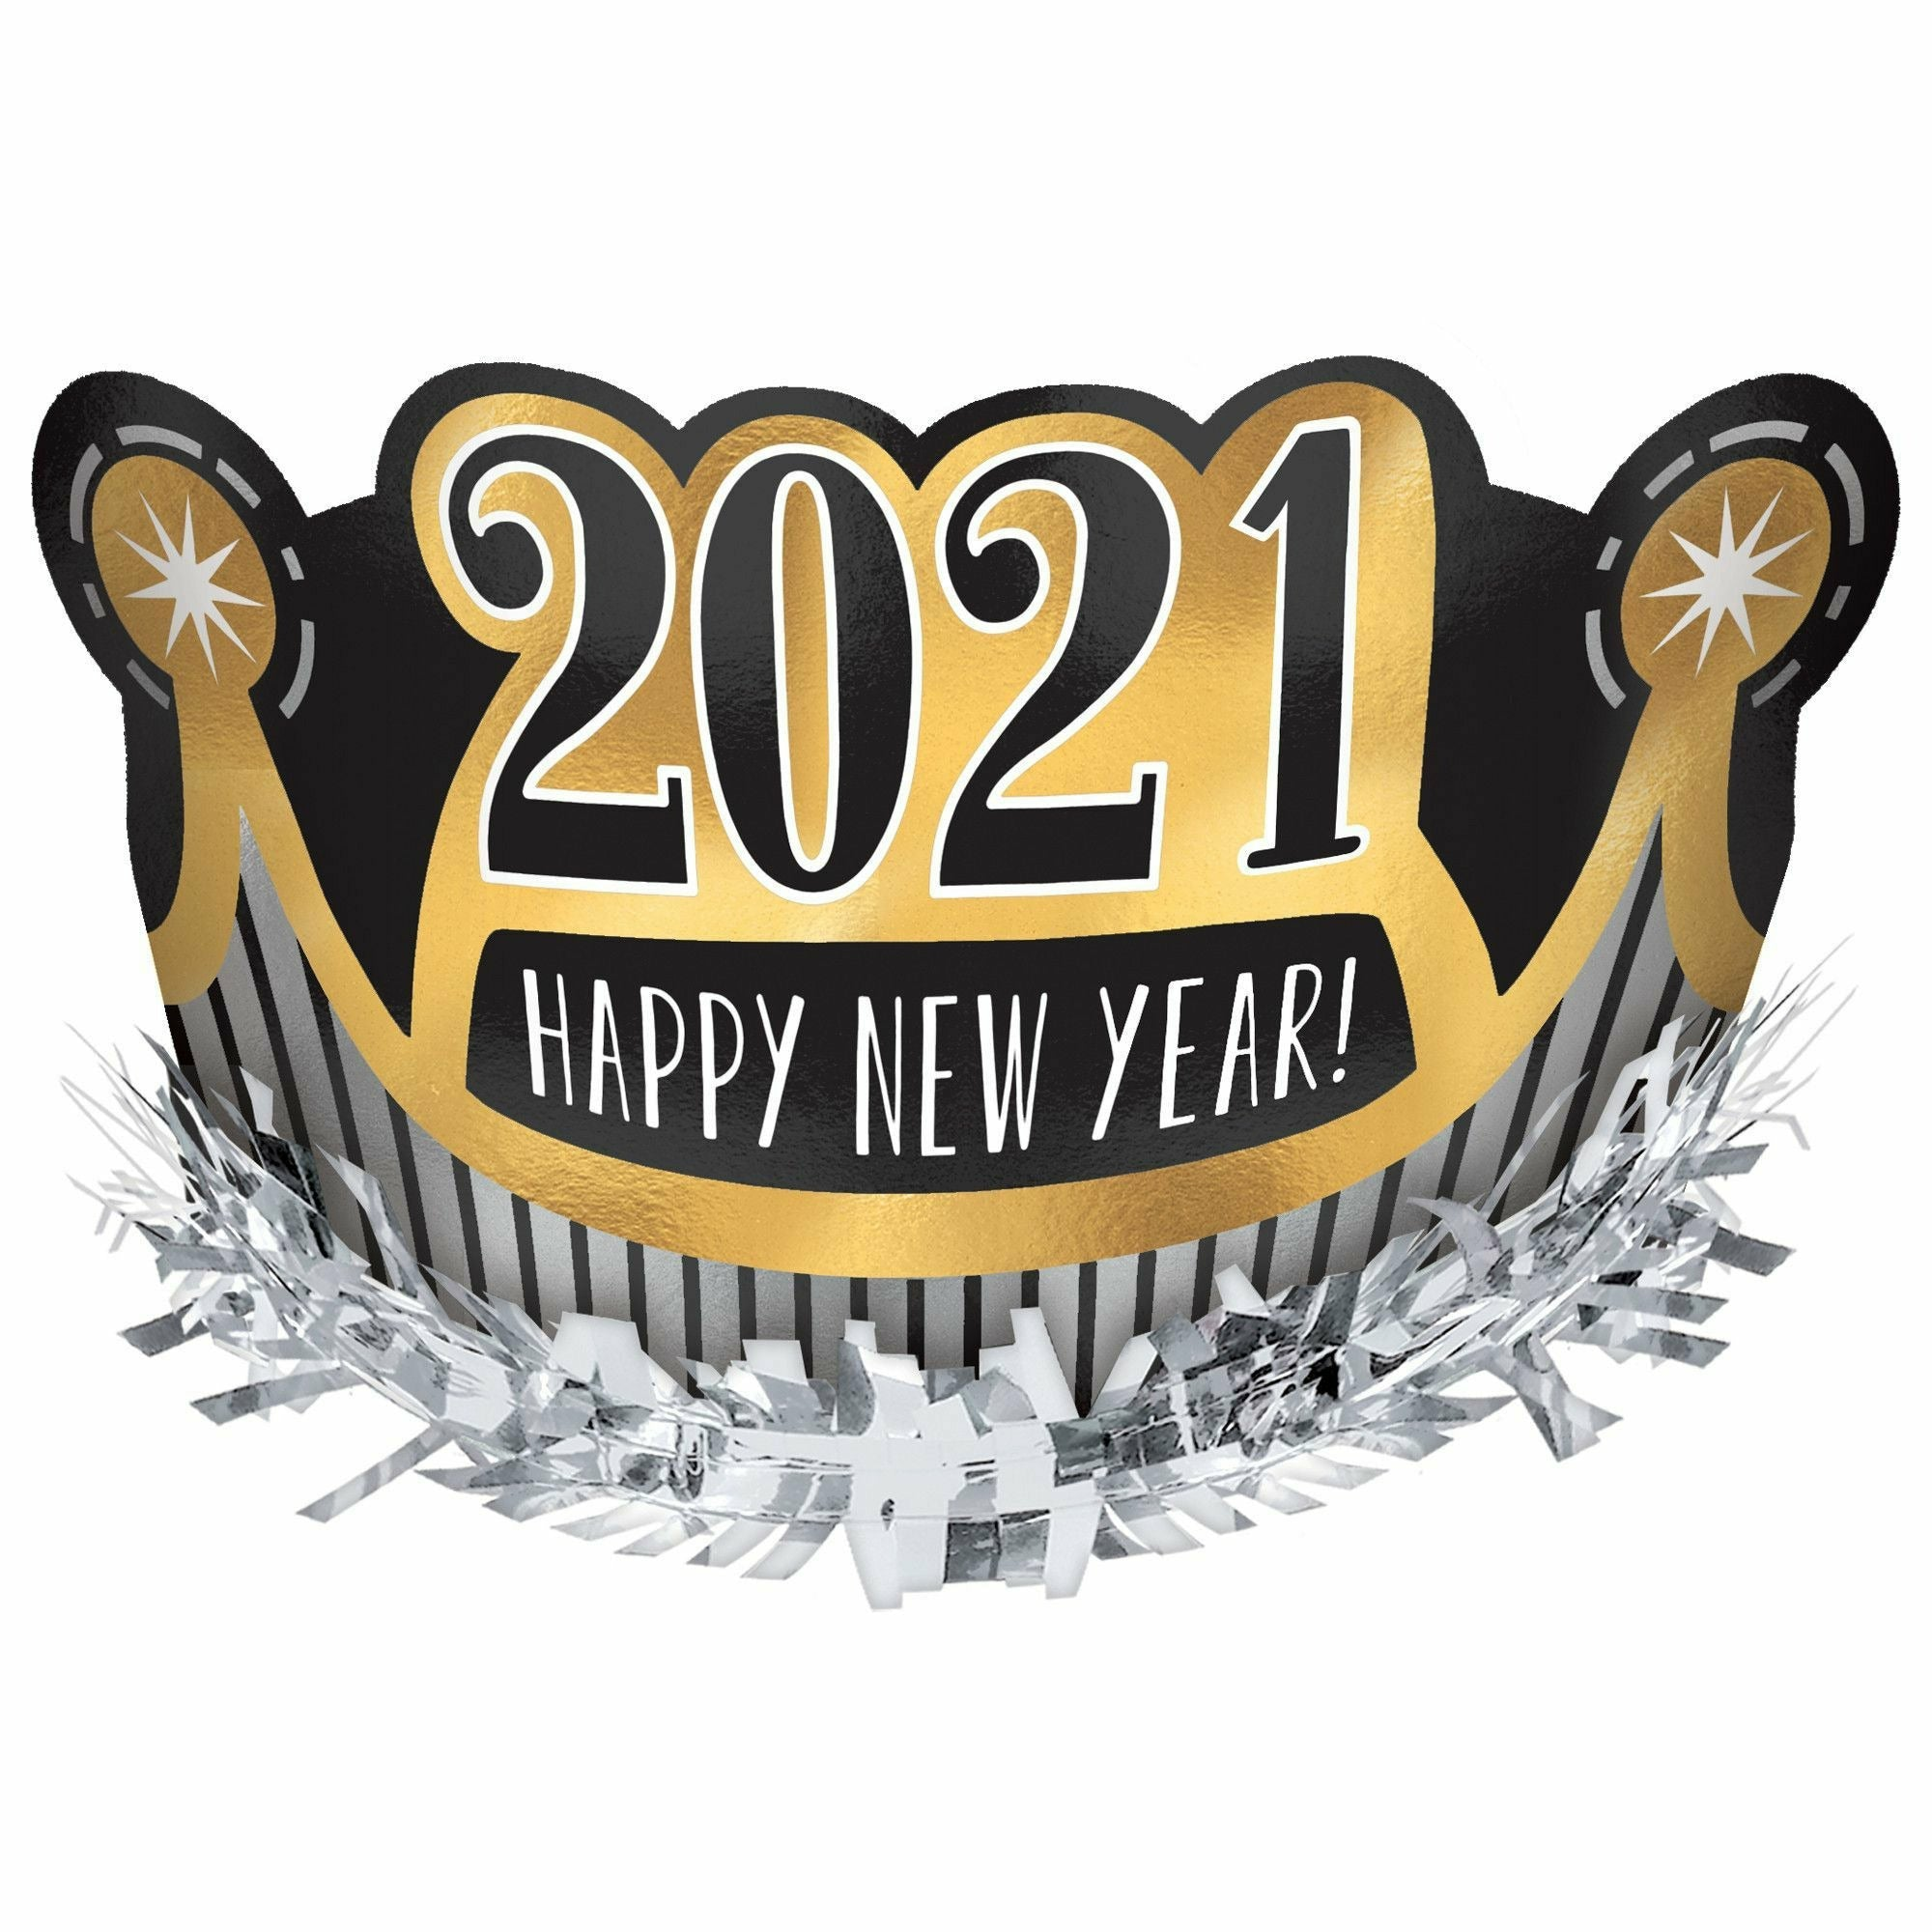 2021 Happy New Year Foil Crown - Black, Silver, Gold